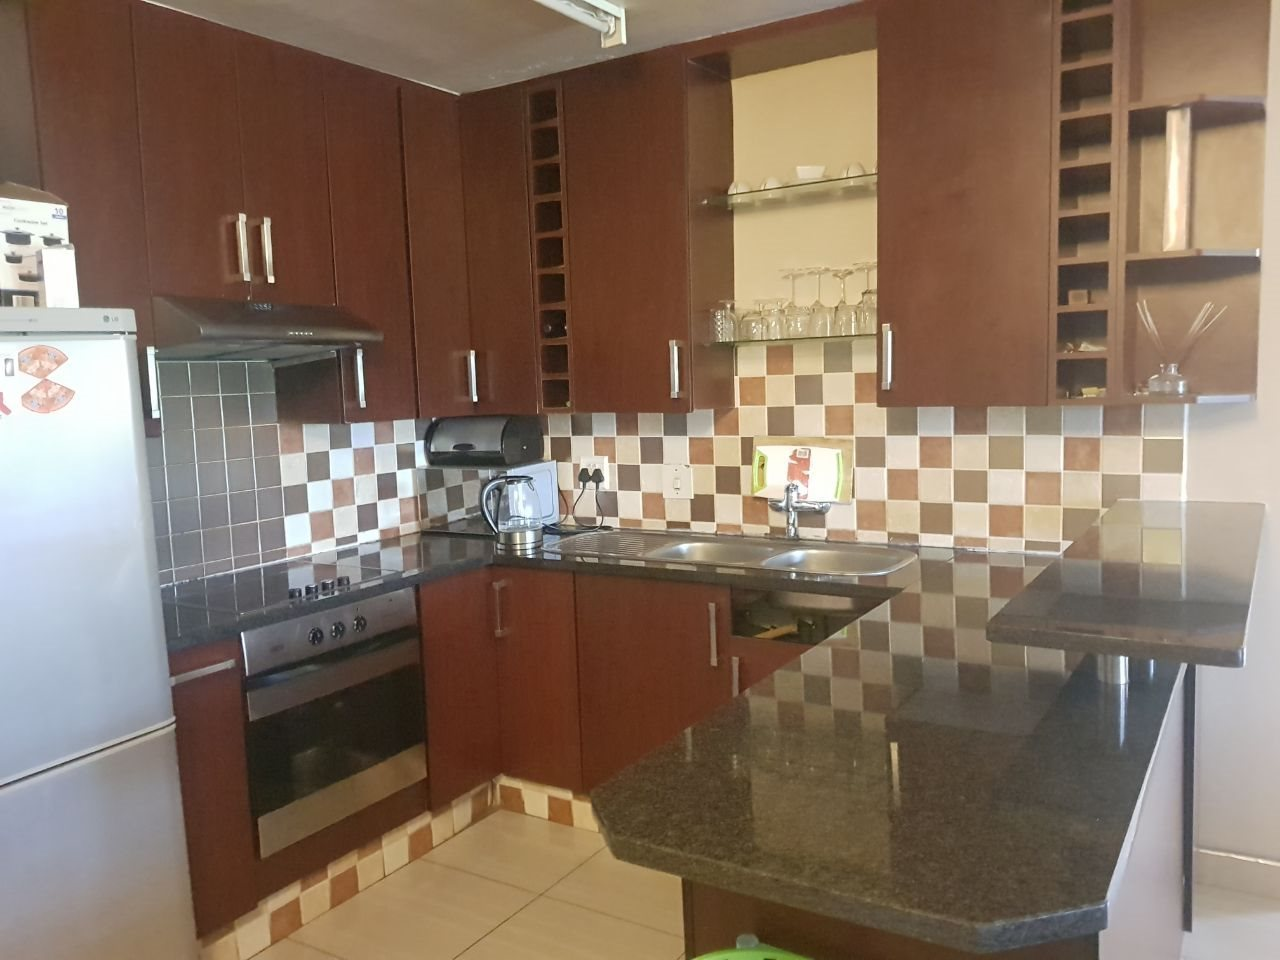 Meer En See property for sale. Ref No: 13590947. Picture no 8